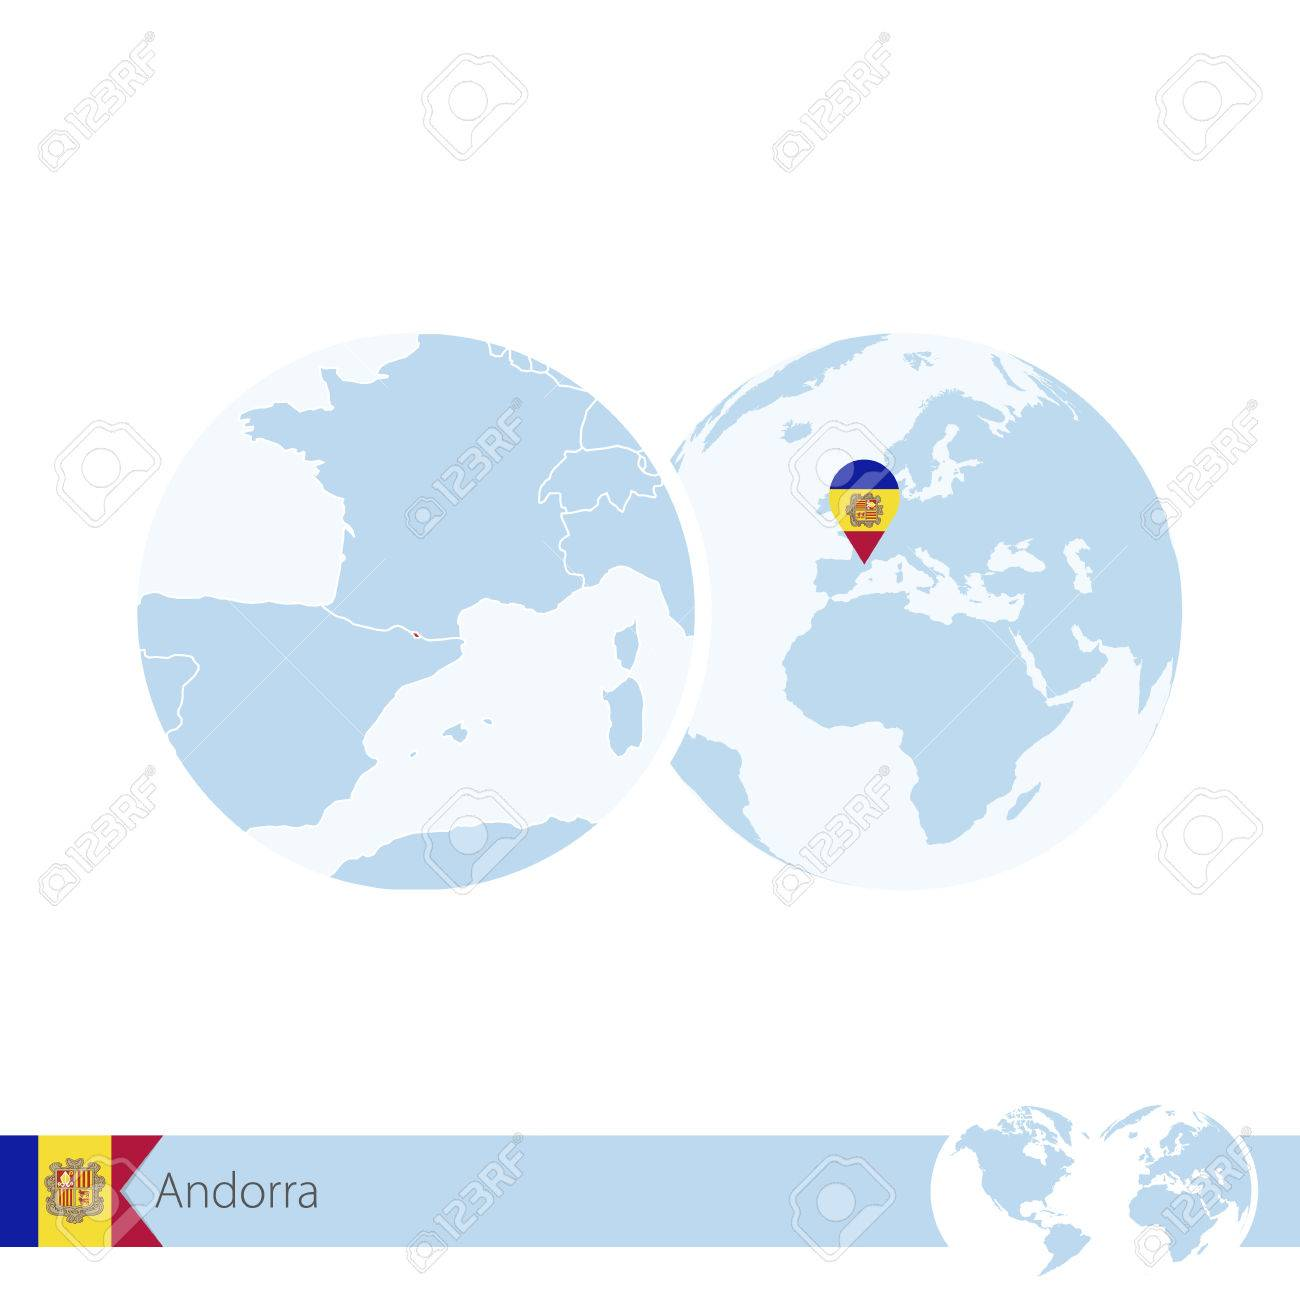 Andorra On World Globe With Flag And Regional Map Of Andorra